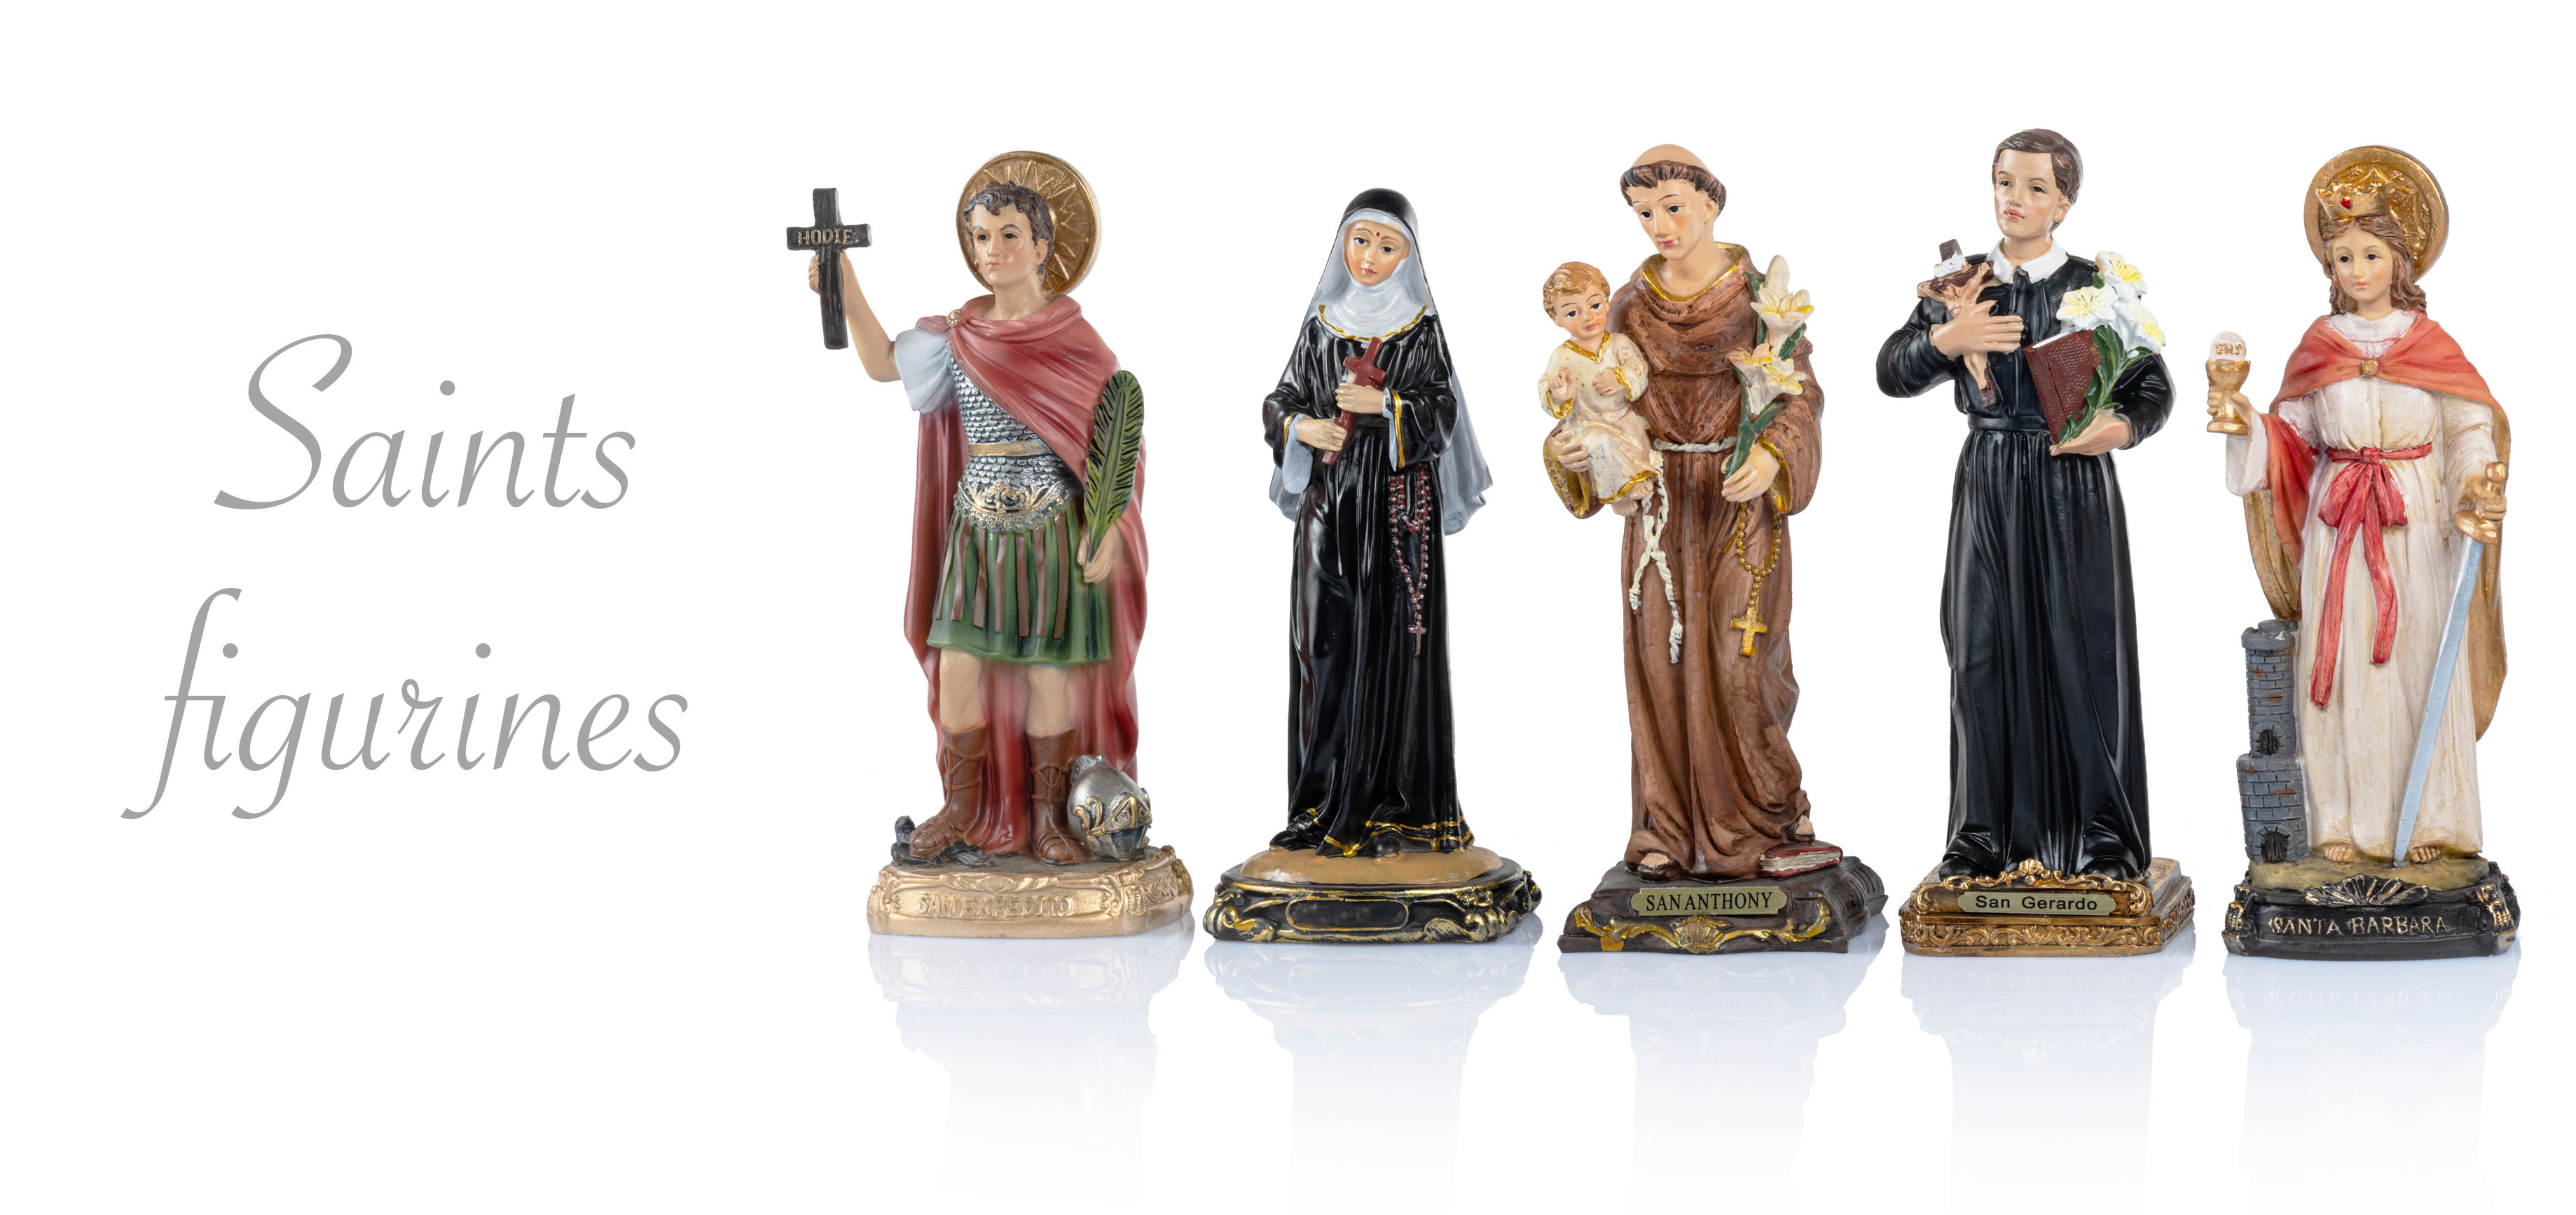 Saints figurines